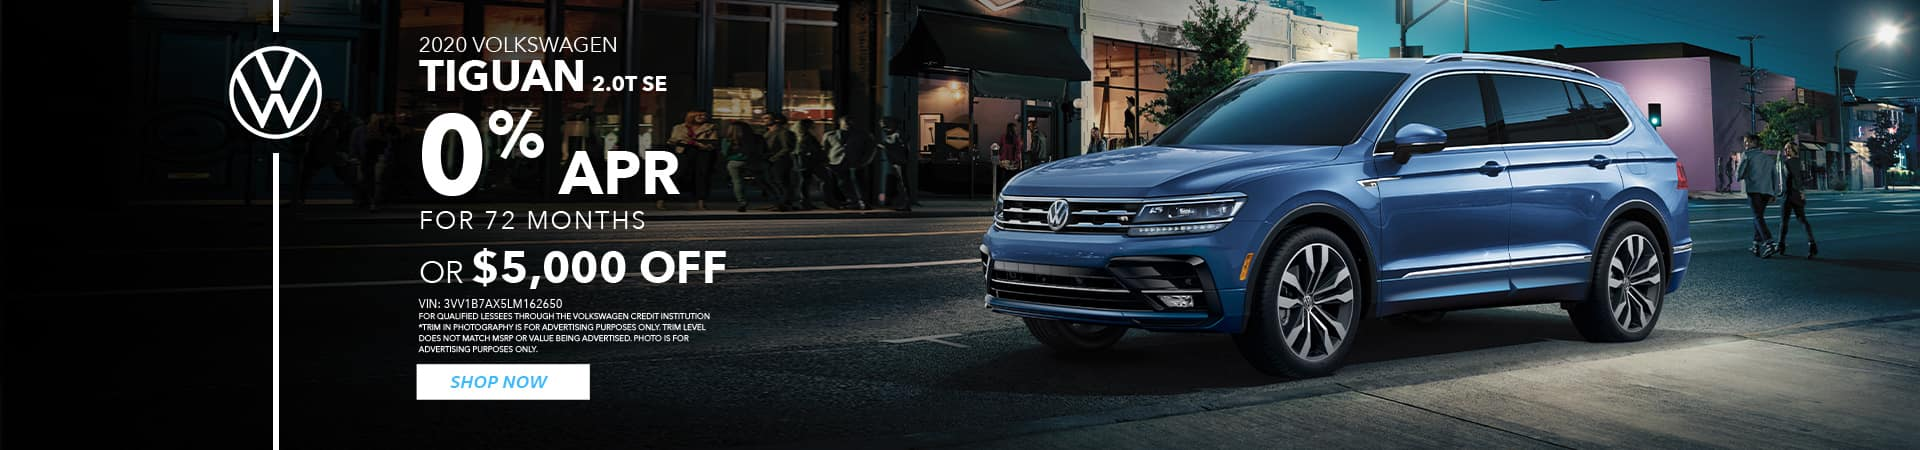 mobile-vw-january-tiguan-banners